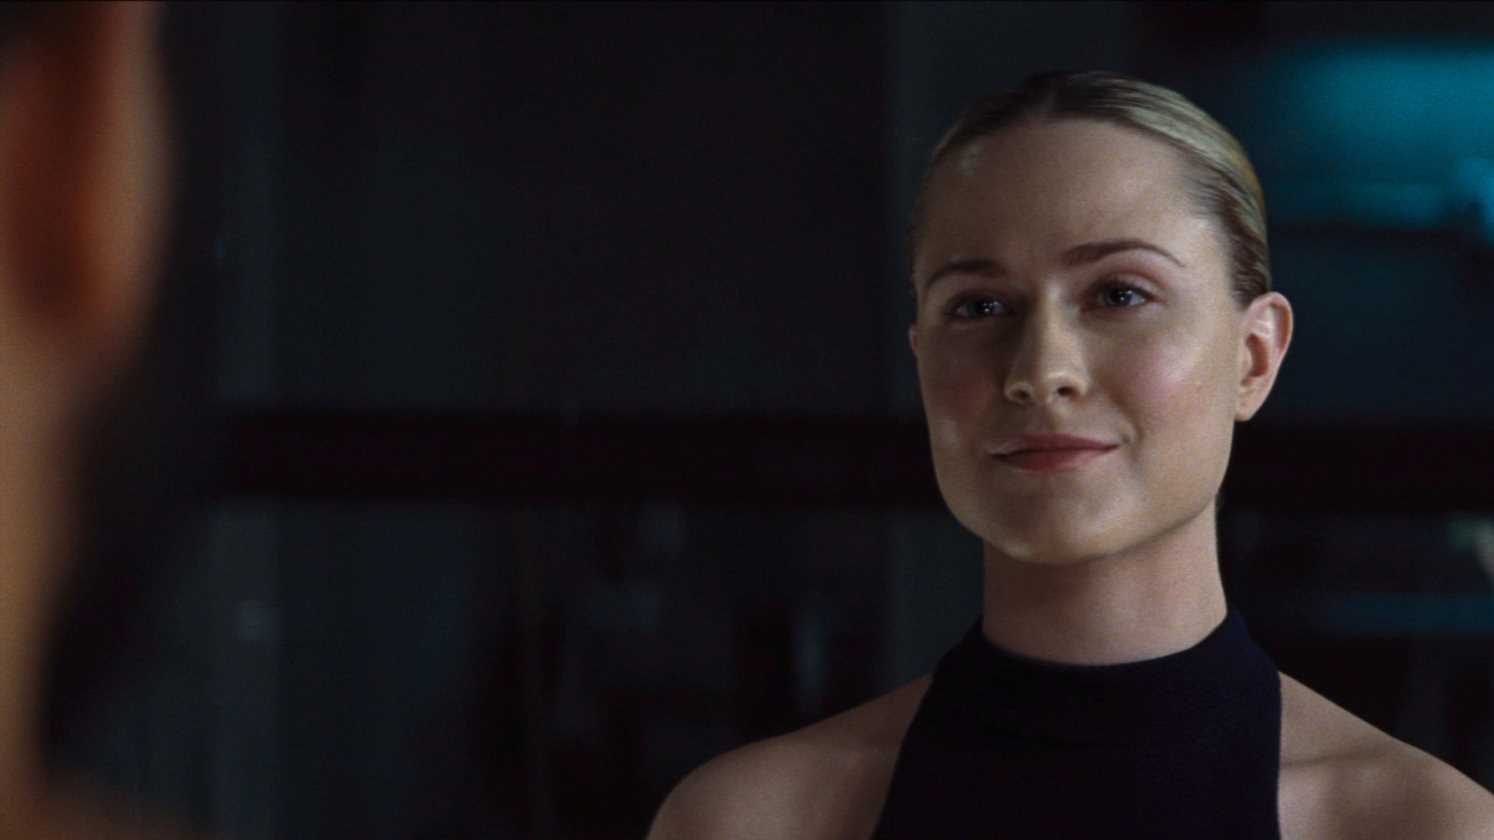 See 'The New World' of HBO's 'Westworld' Season 3 in Comic-Con trailer debut